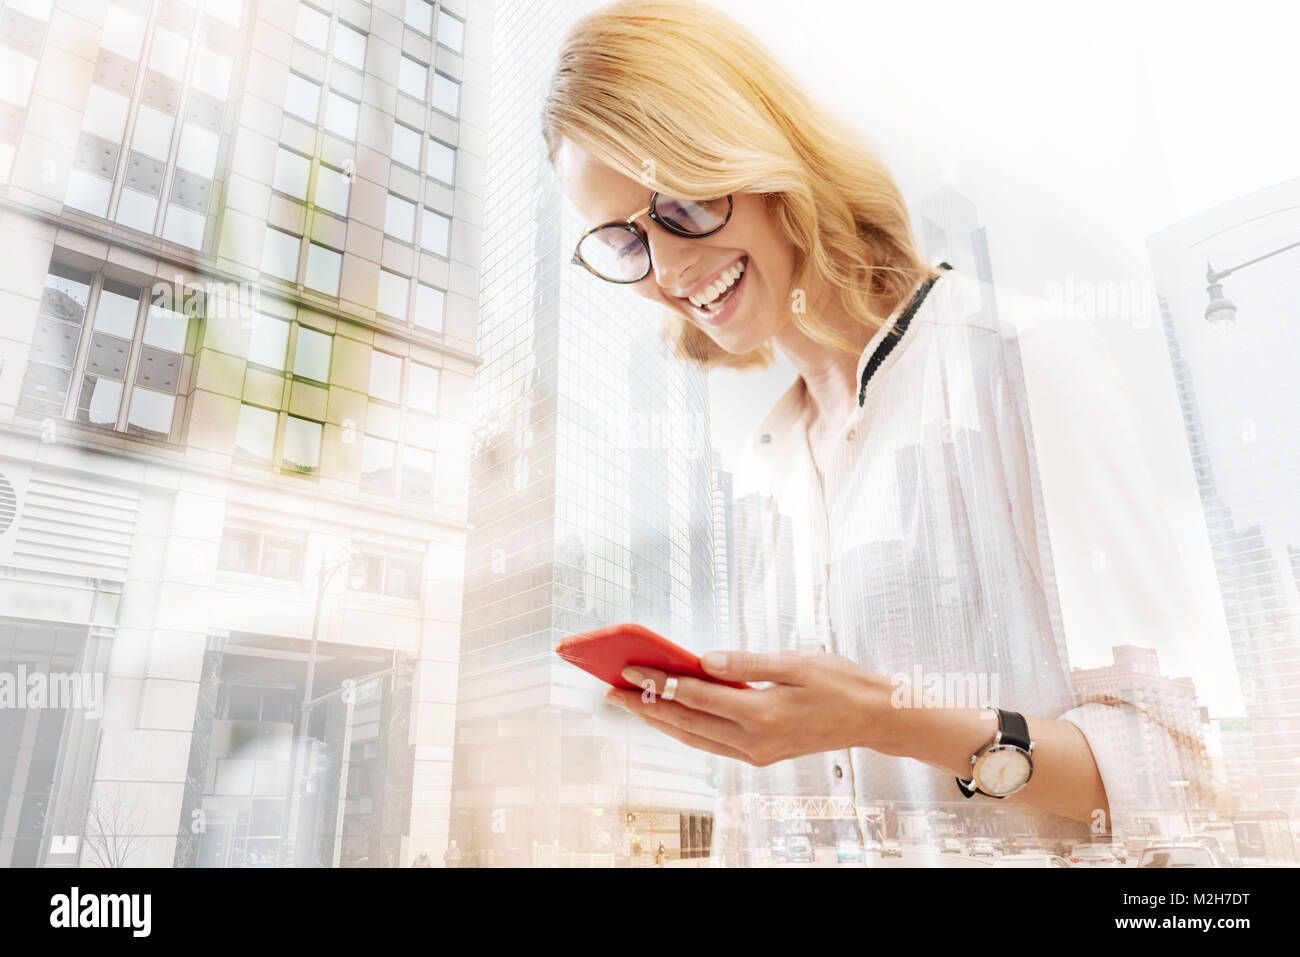 Attentive young woman looking at the mobile phone - Stock Image